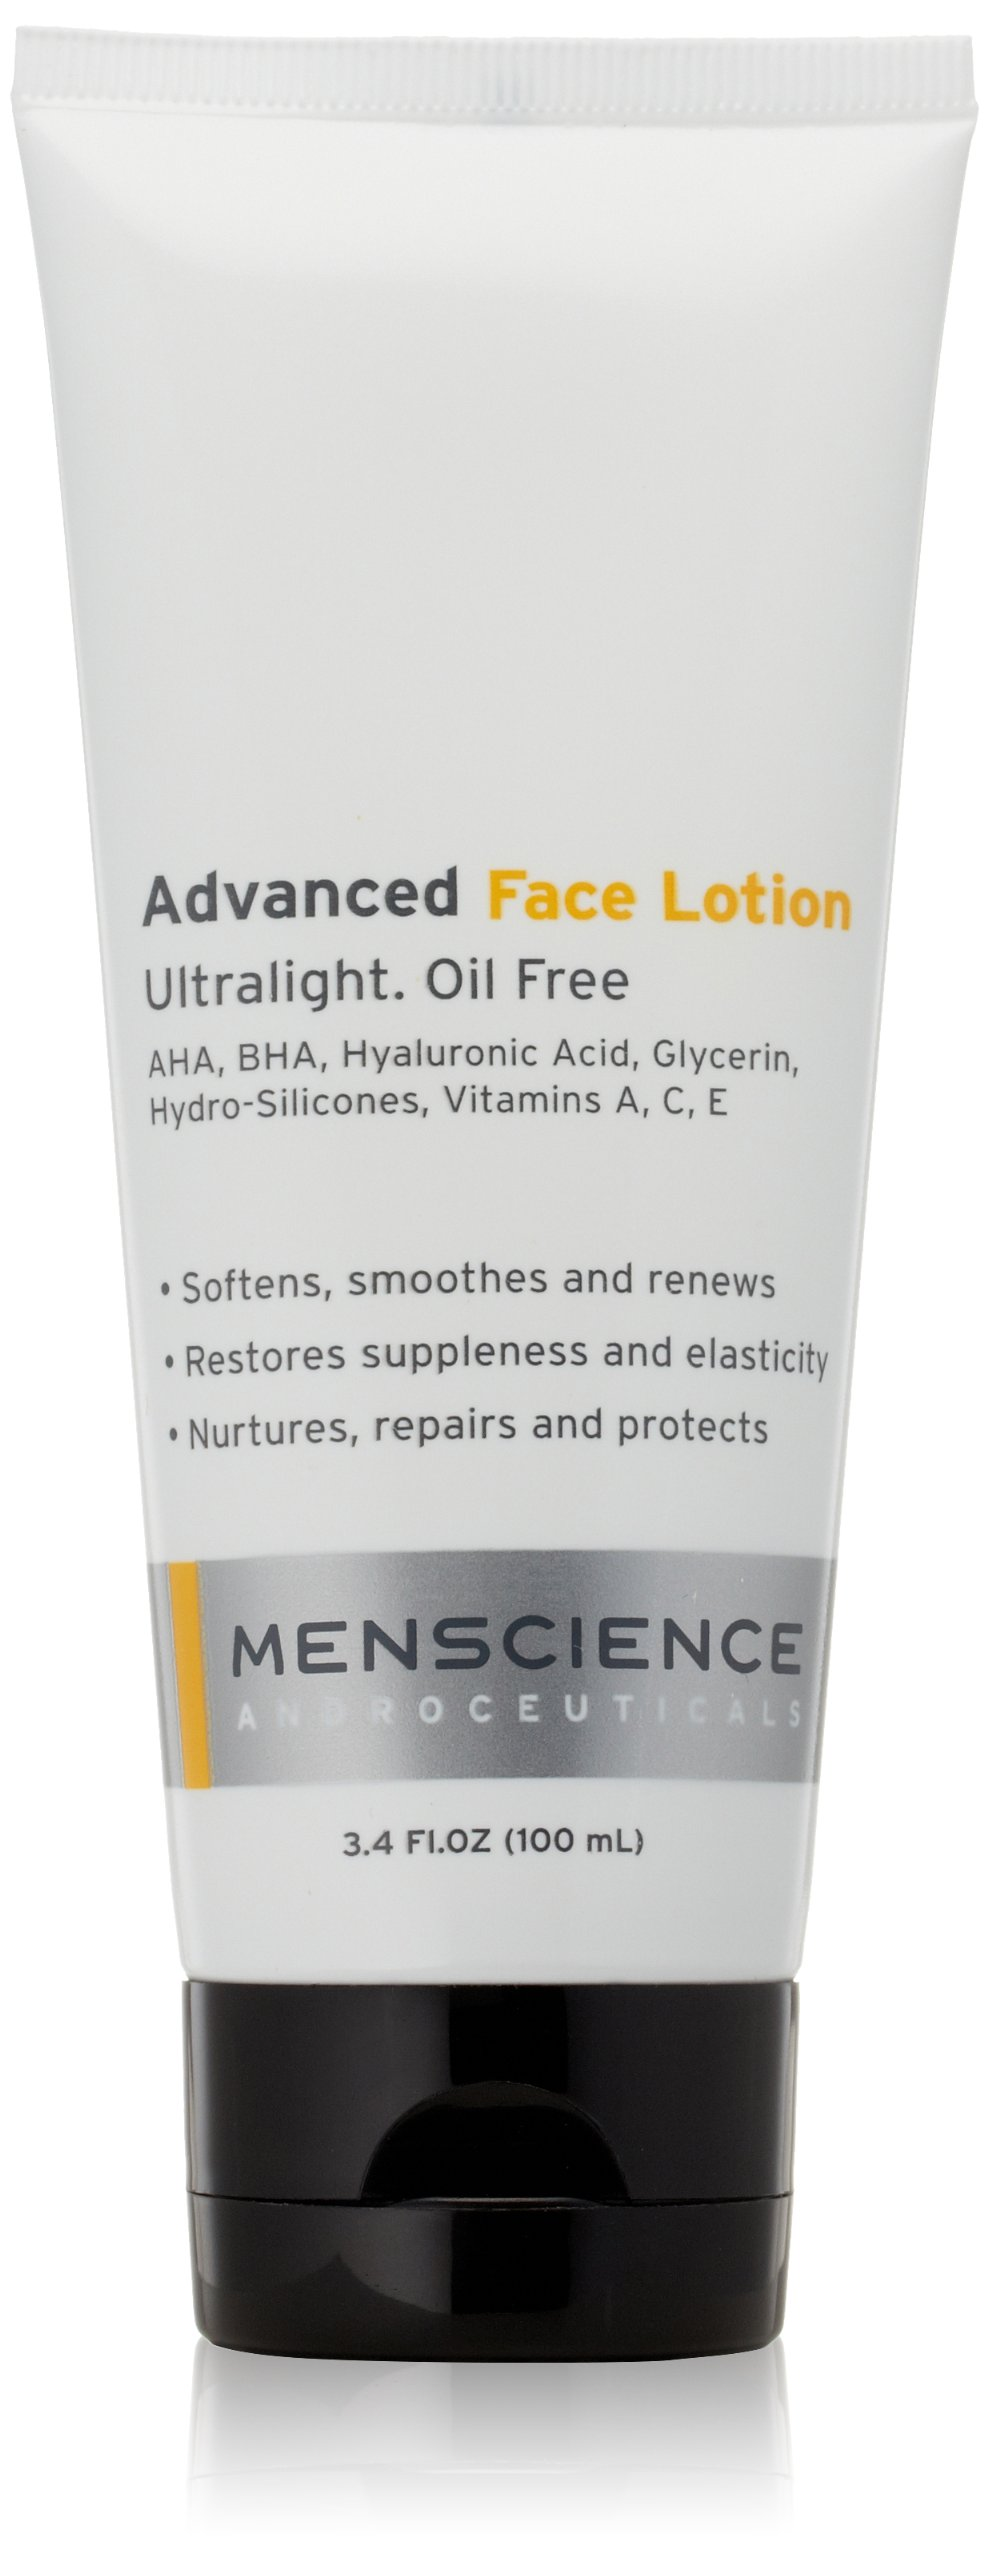 MenScience Androceuticals Advanced Face Lotion